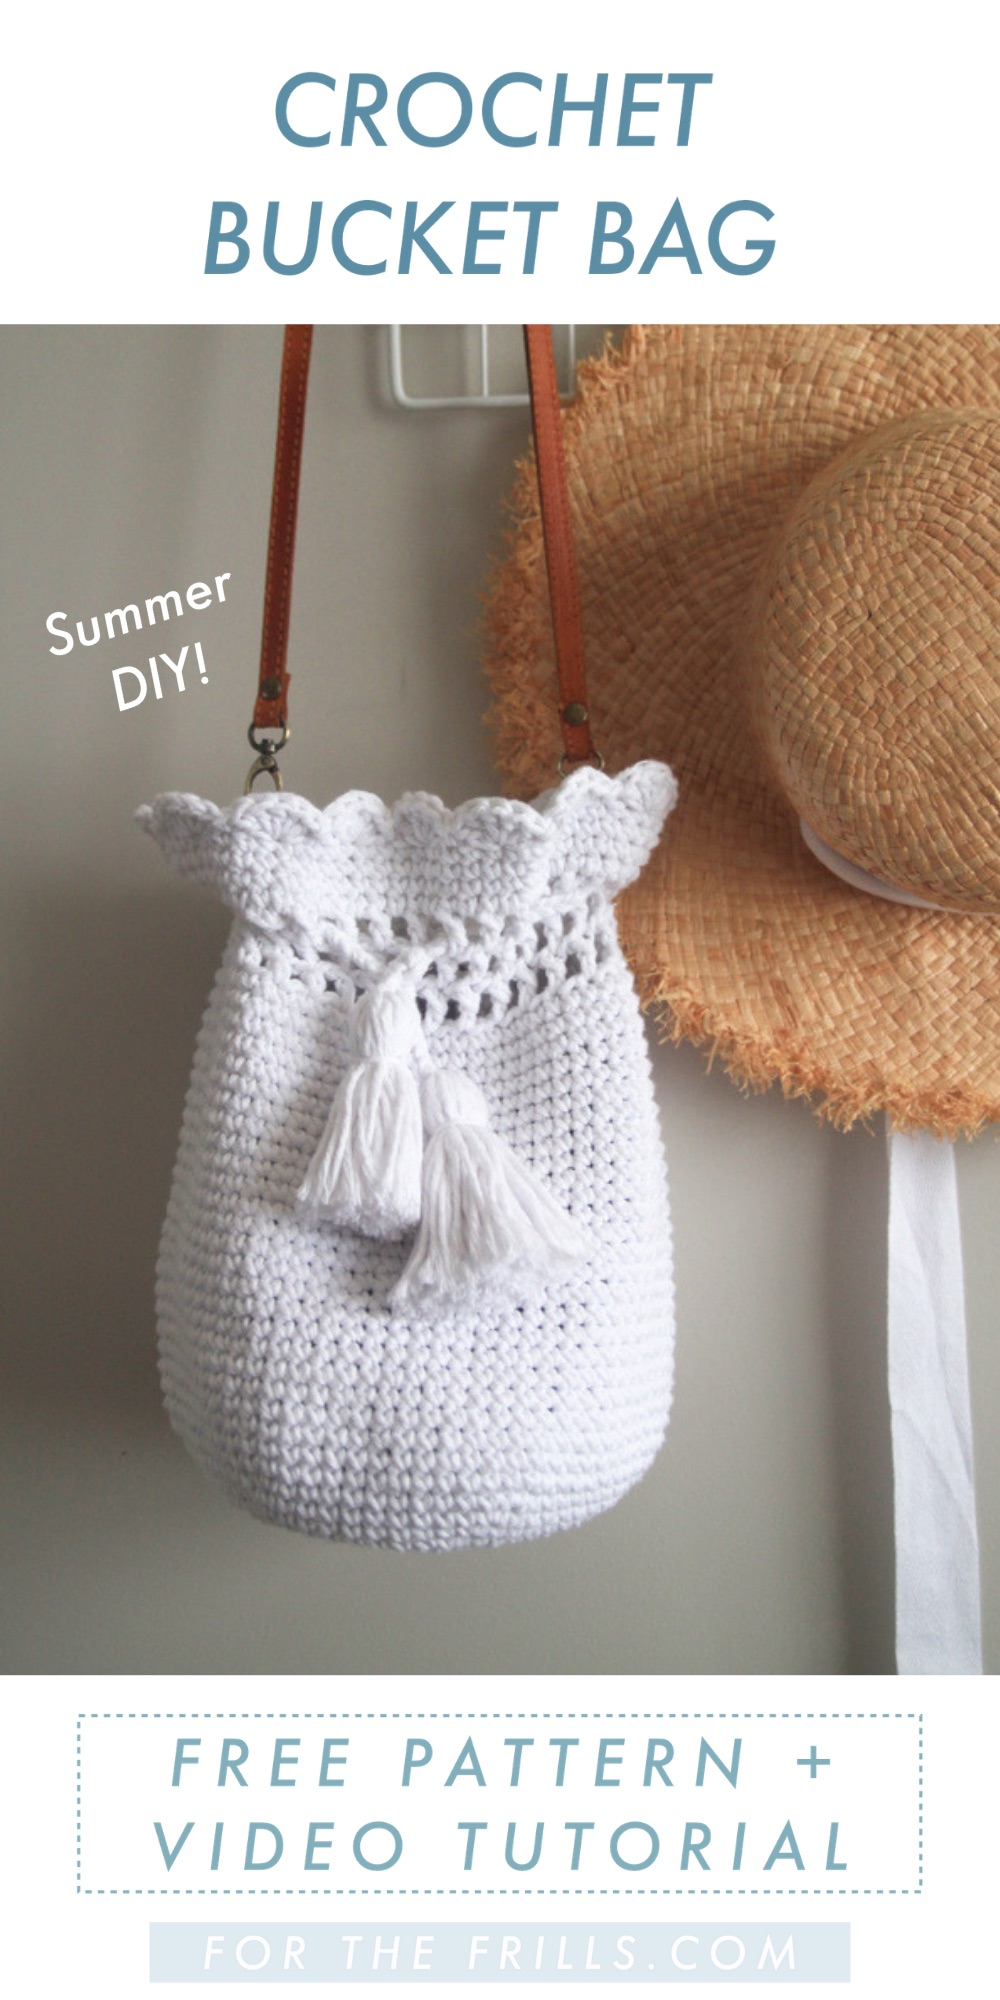 crochet bucket bag free pattern pin image